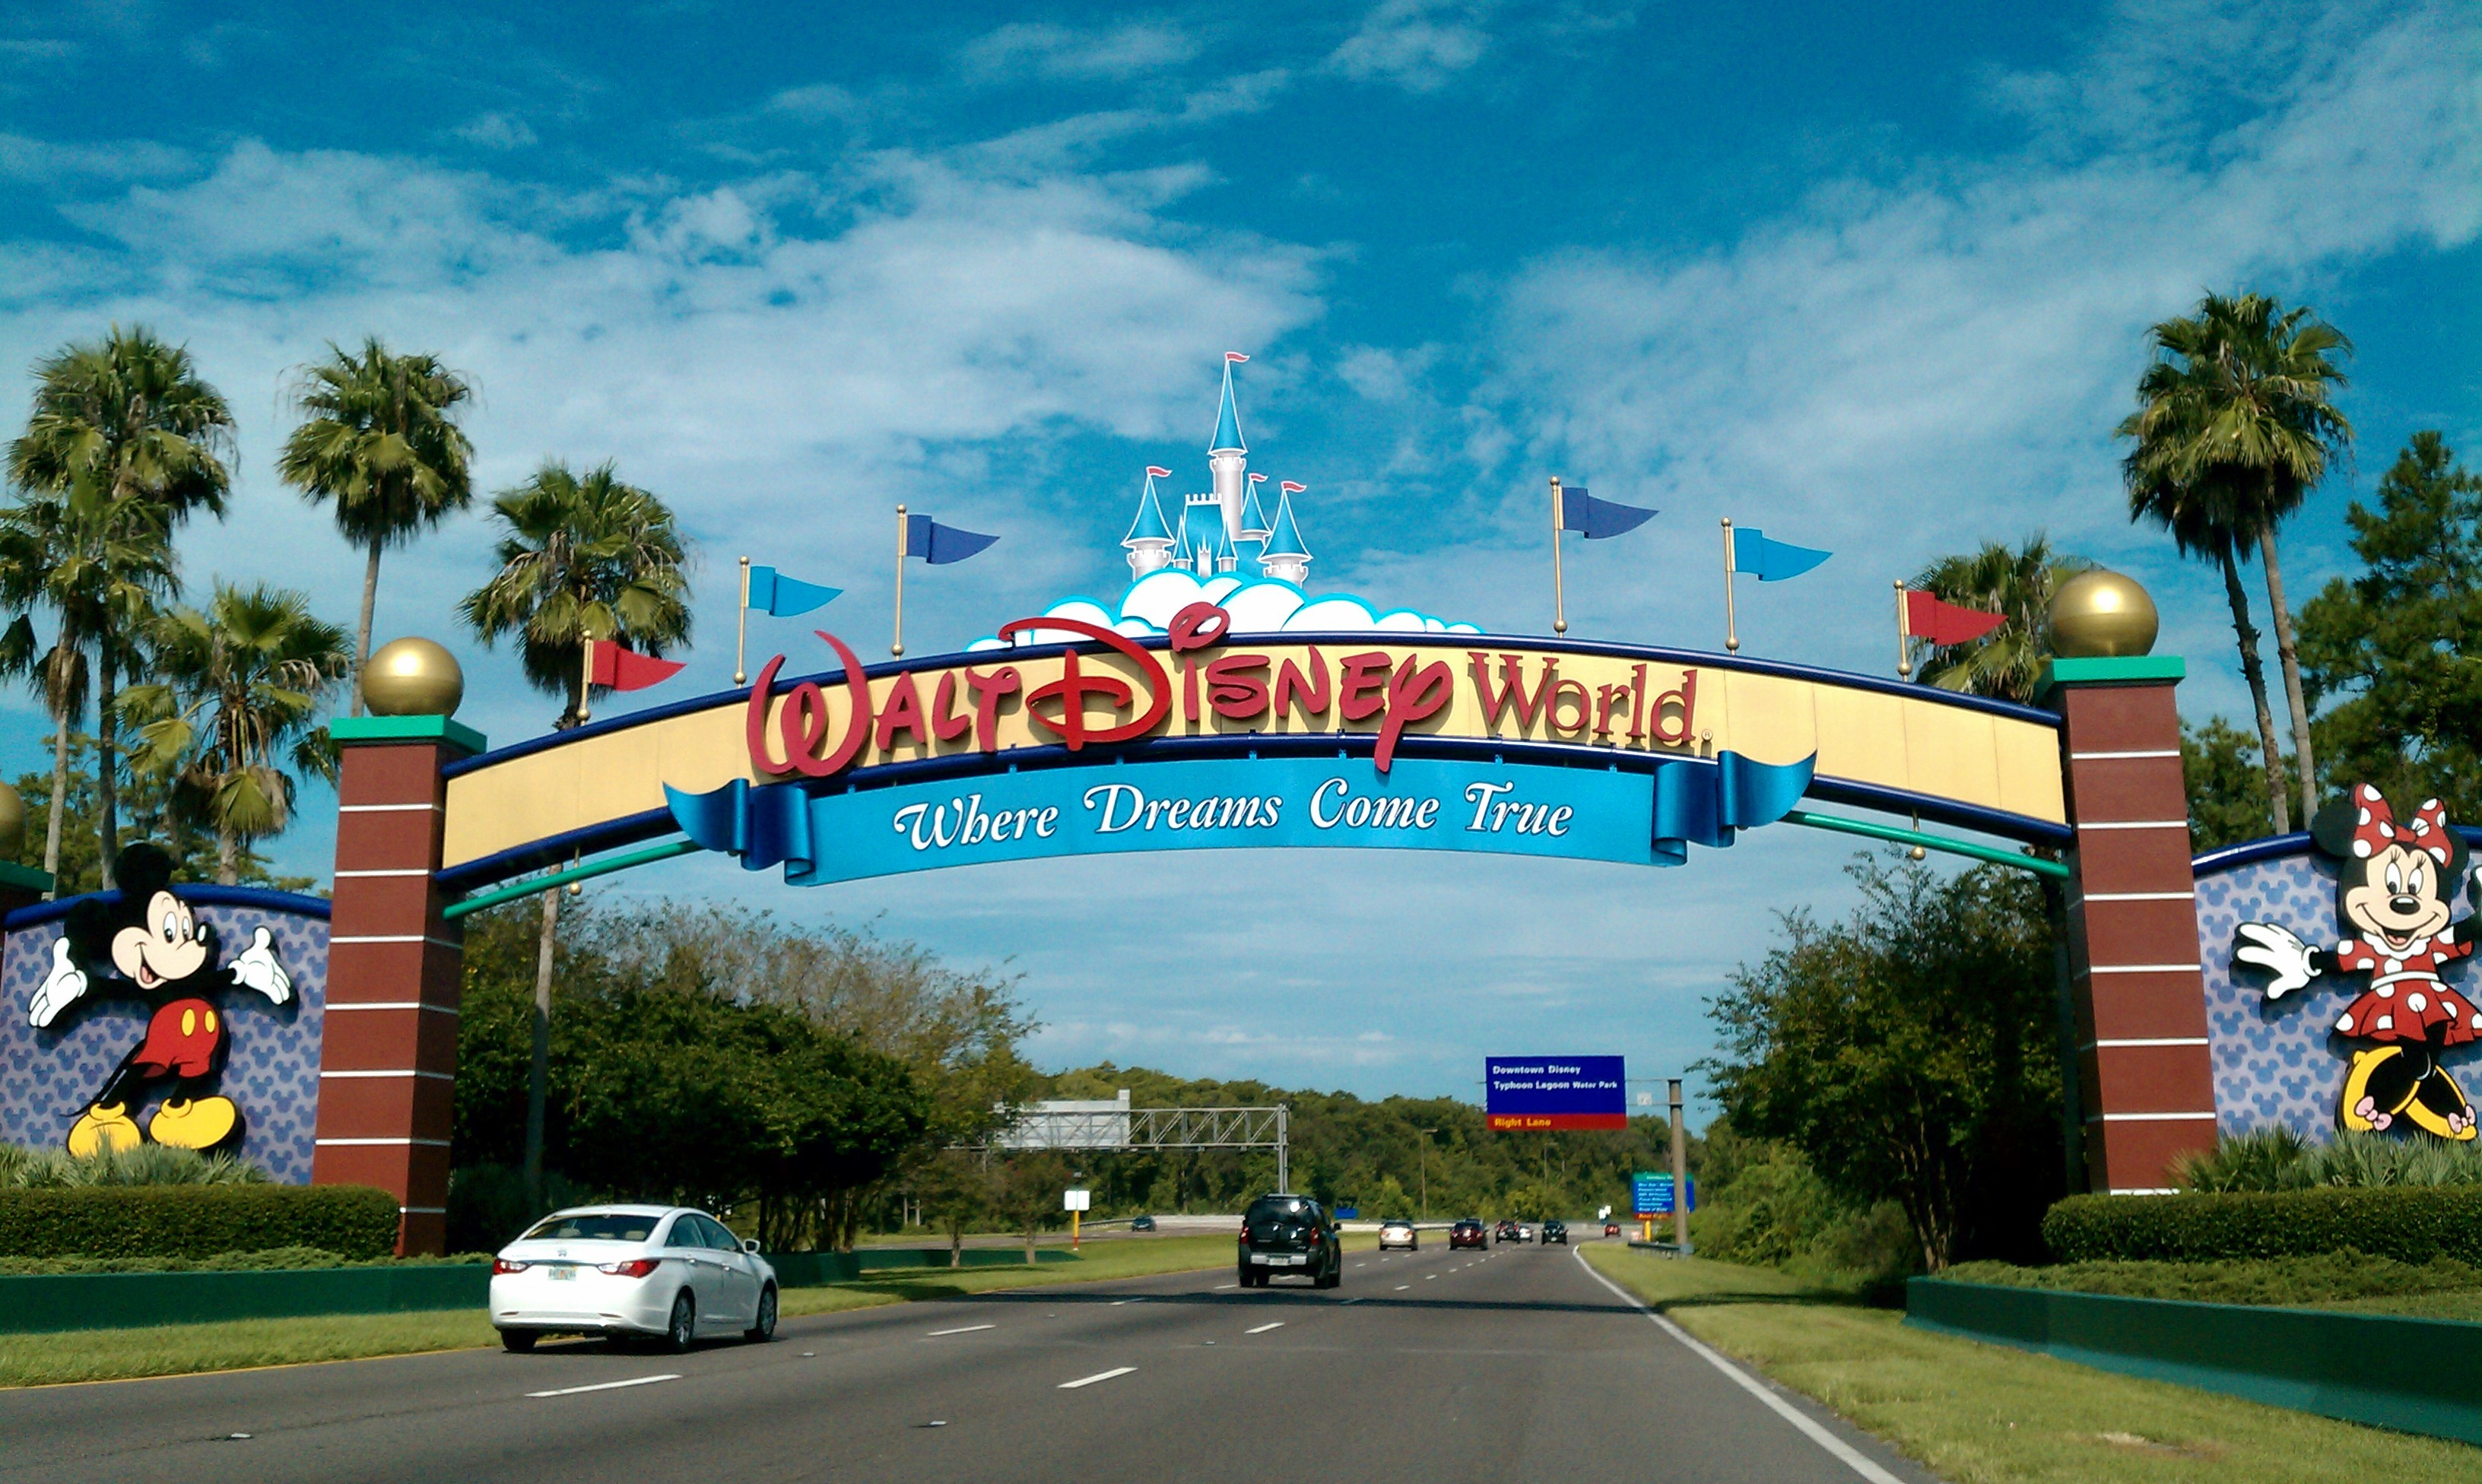 Disney World Brings Back 3 Day Ticket Deal For Florida Residents Blogs